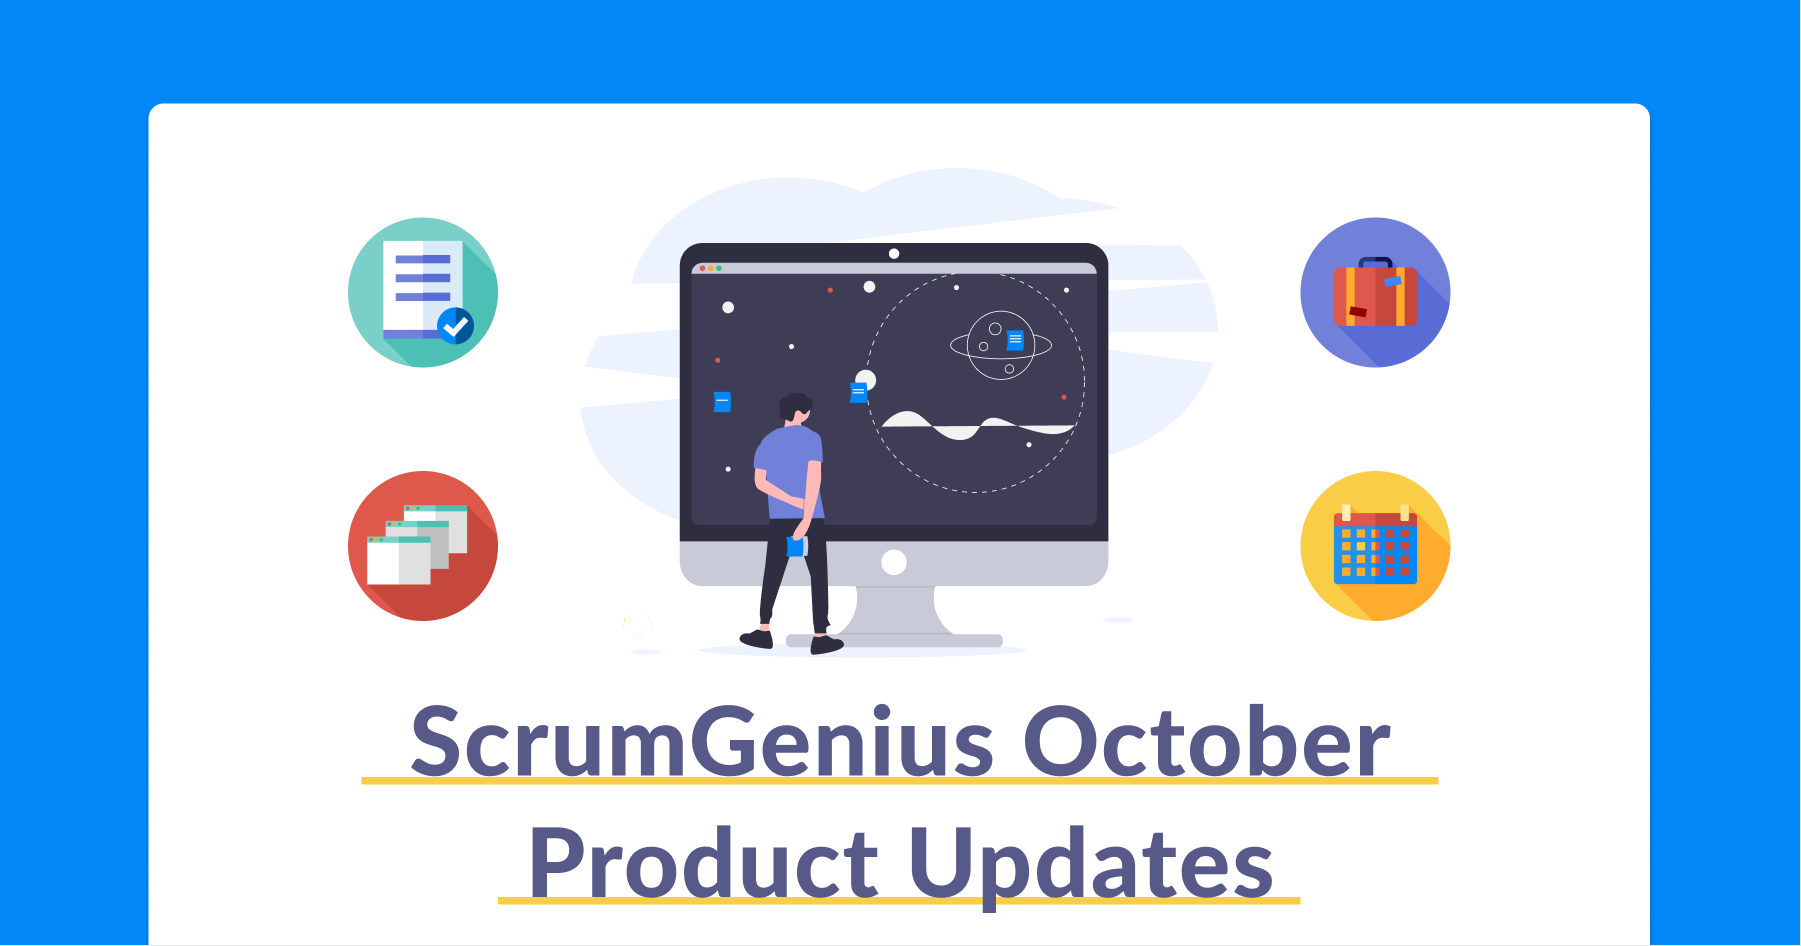 October Product Updates - ScrumGenius